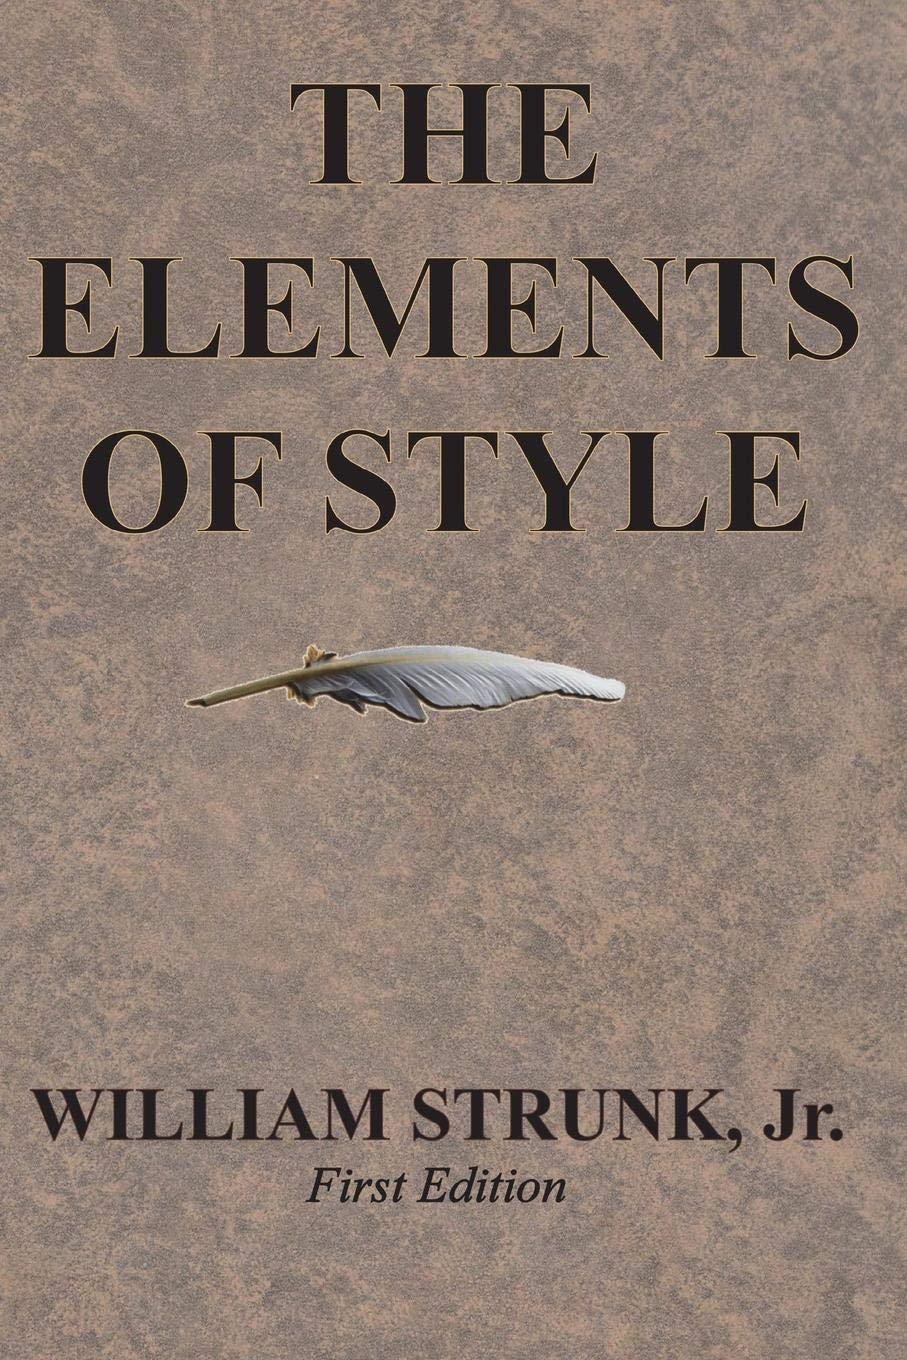 The Elements Of Style William Strunk Jr 9781945644016 Amazon Com